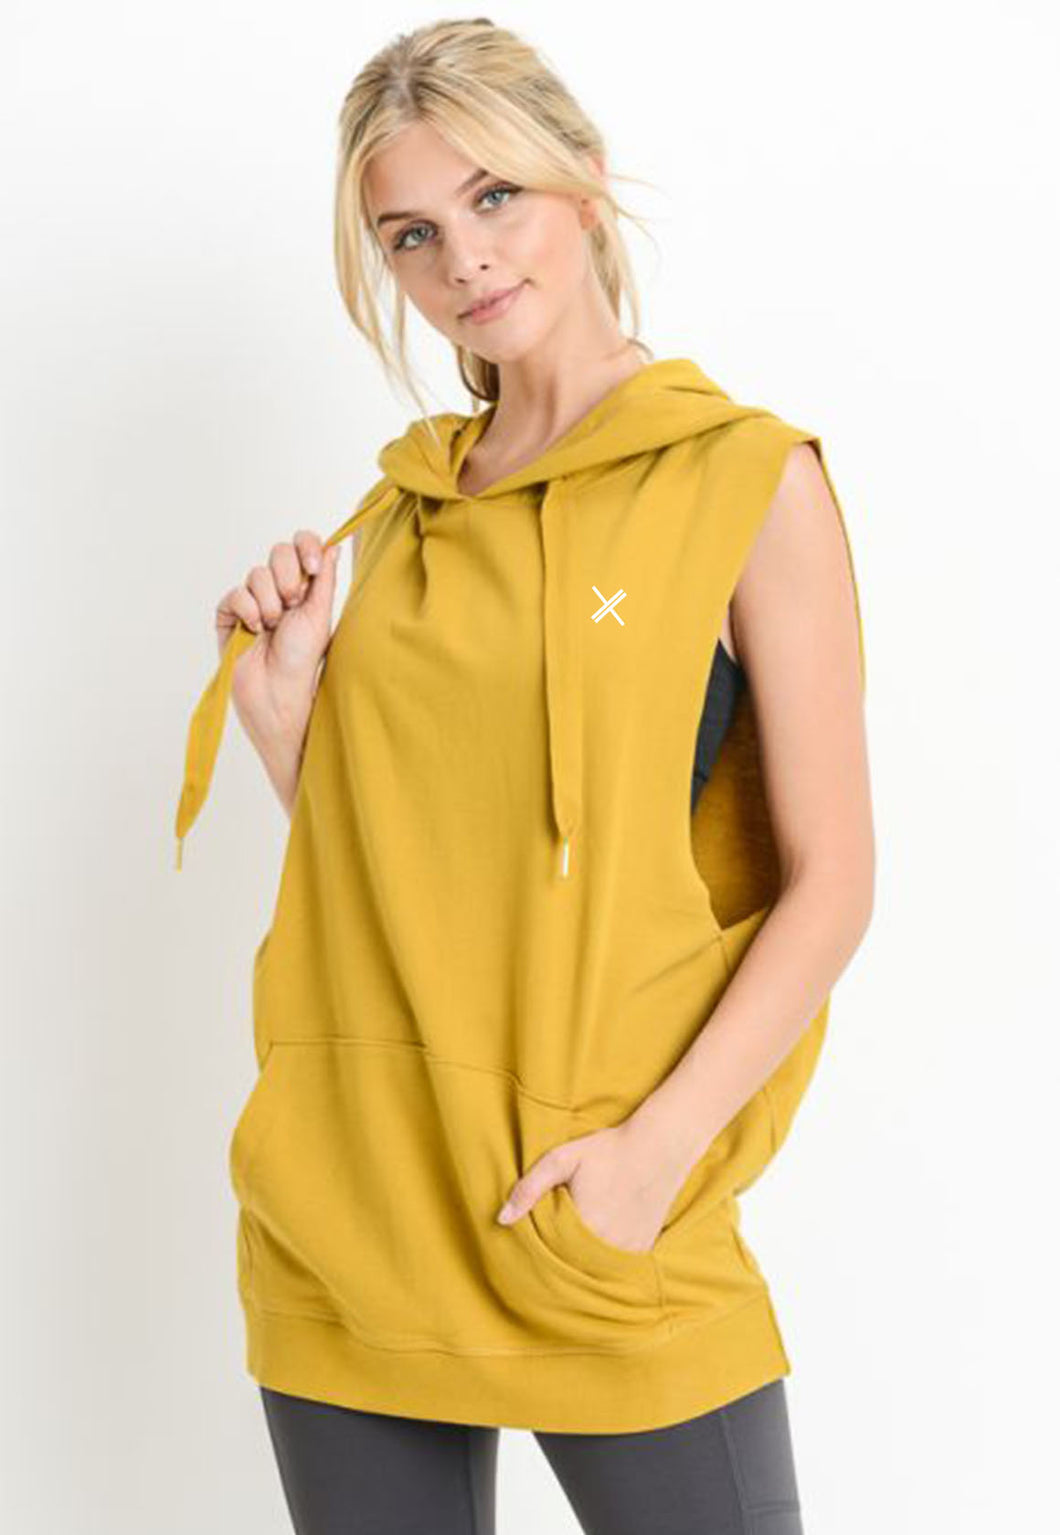 Womens - MUSCLE Oversized Sleeveless Hoodie - Tops - TWOTHREE